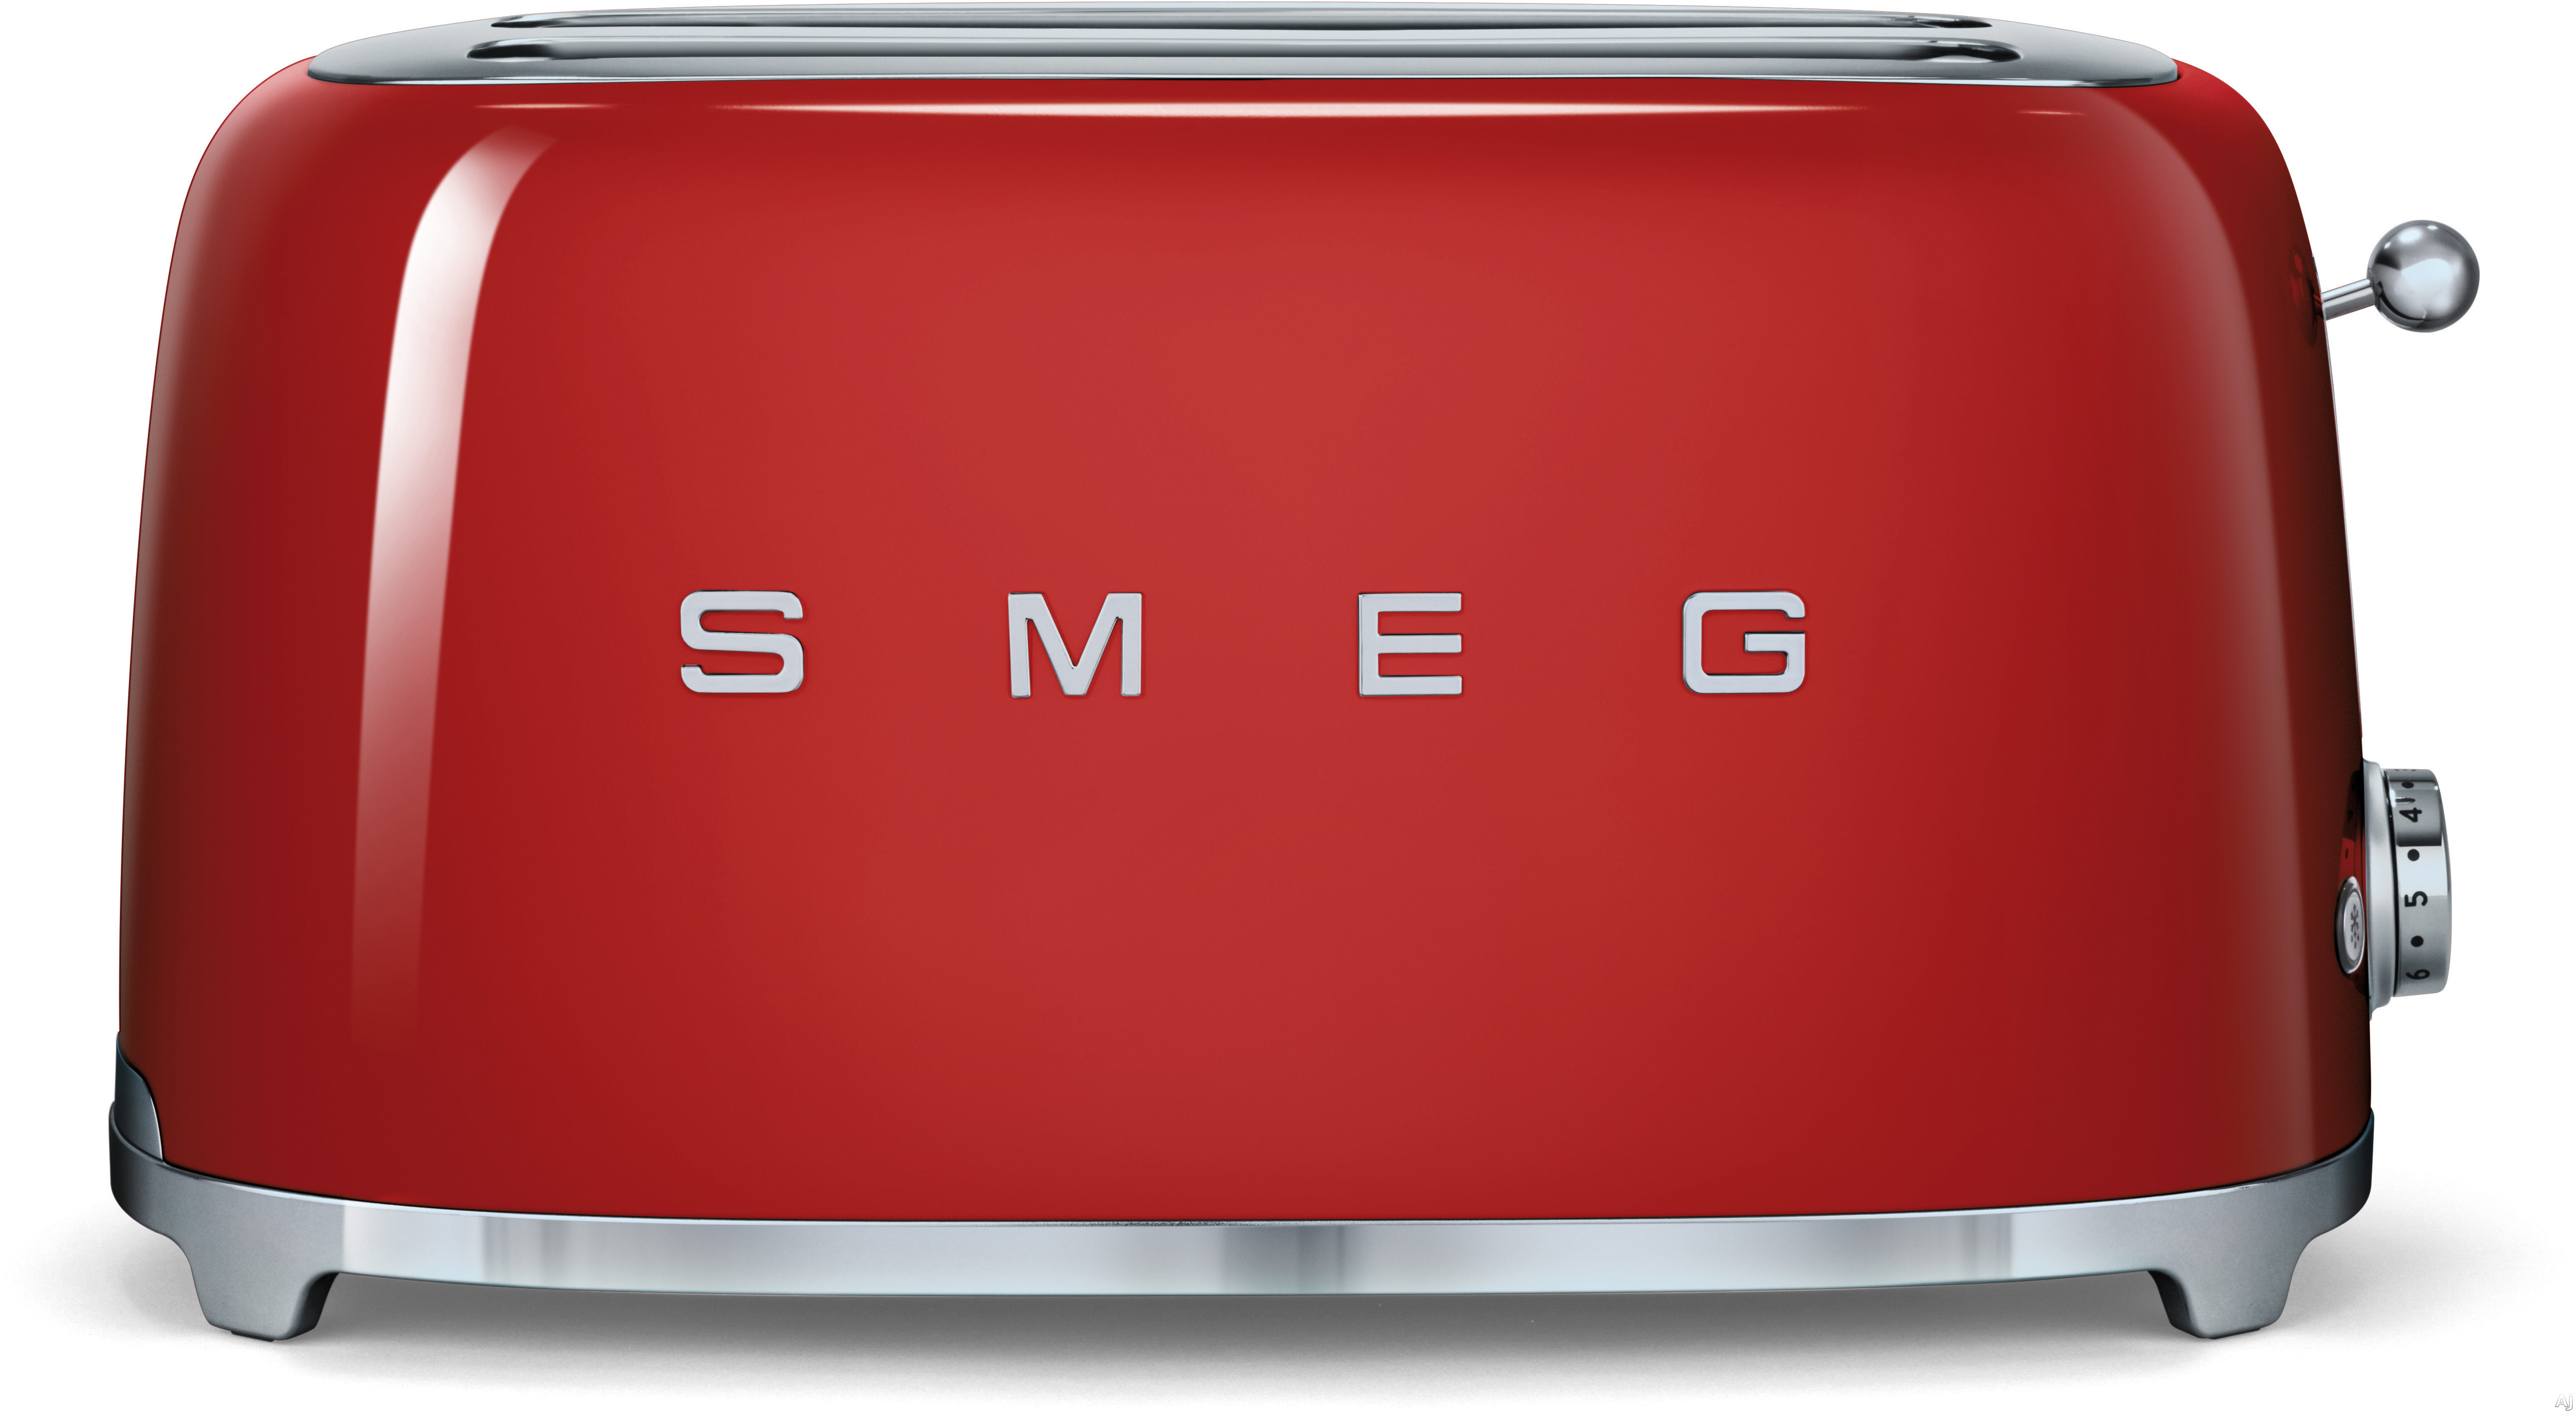 Smeg 50's Retro Design TSF02RDUS Countertop Toaster with 4 Slice Capacity, Defrost Setting, Bagel Setting, Self-Centering Racks, Automatic Slice Pop Up and Stainless Steel Crumb Tray: Red